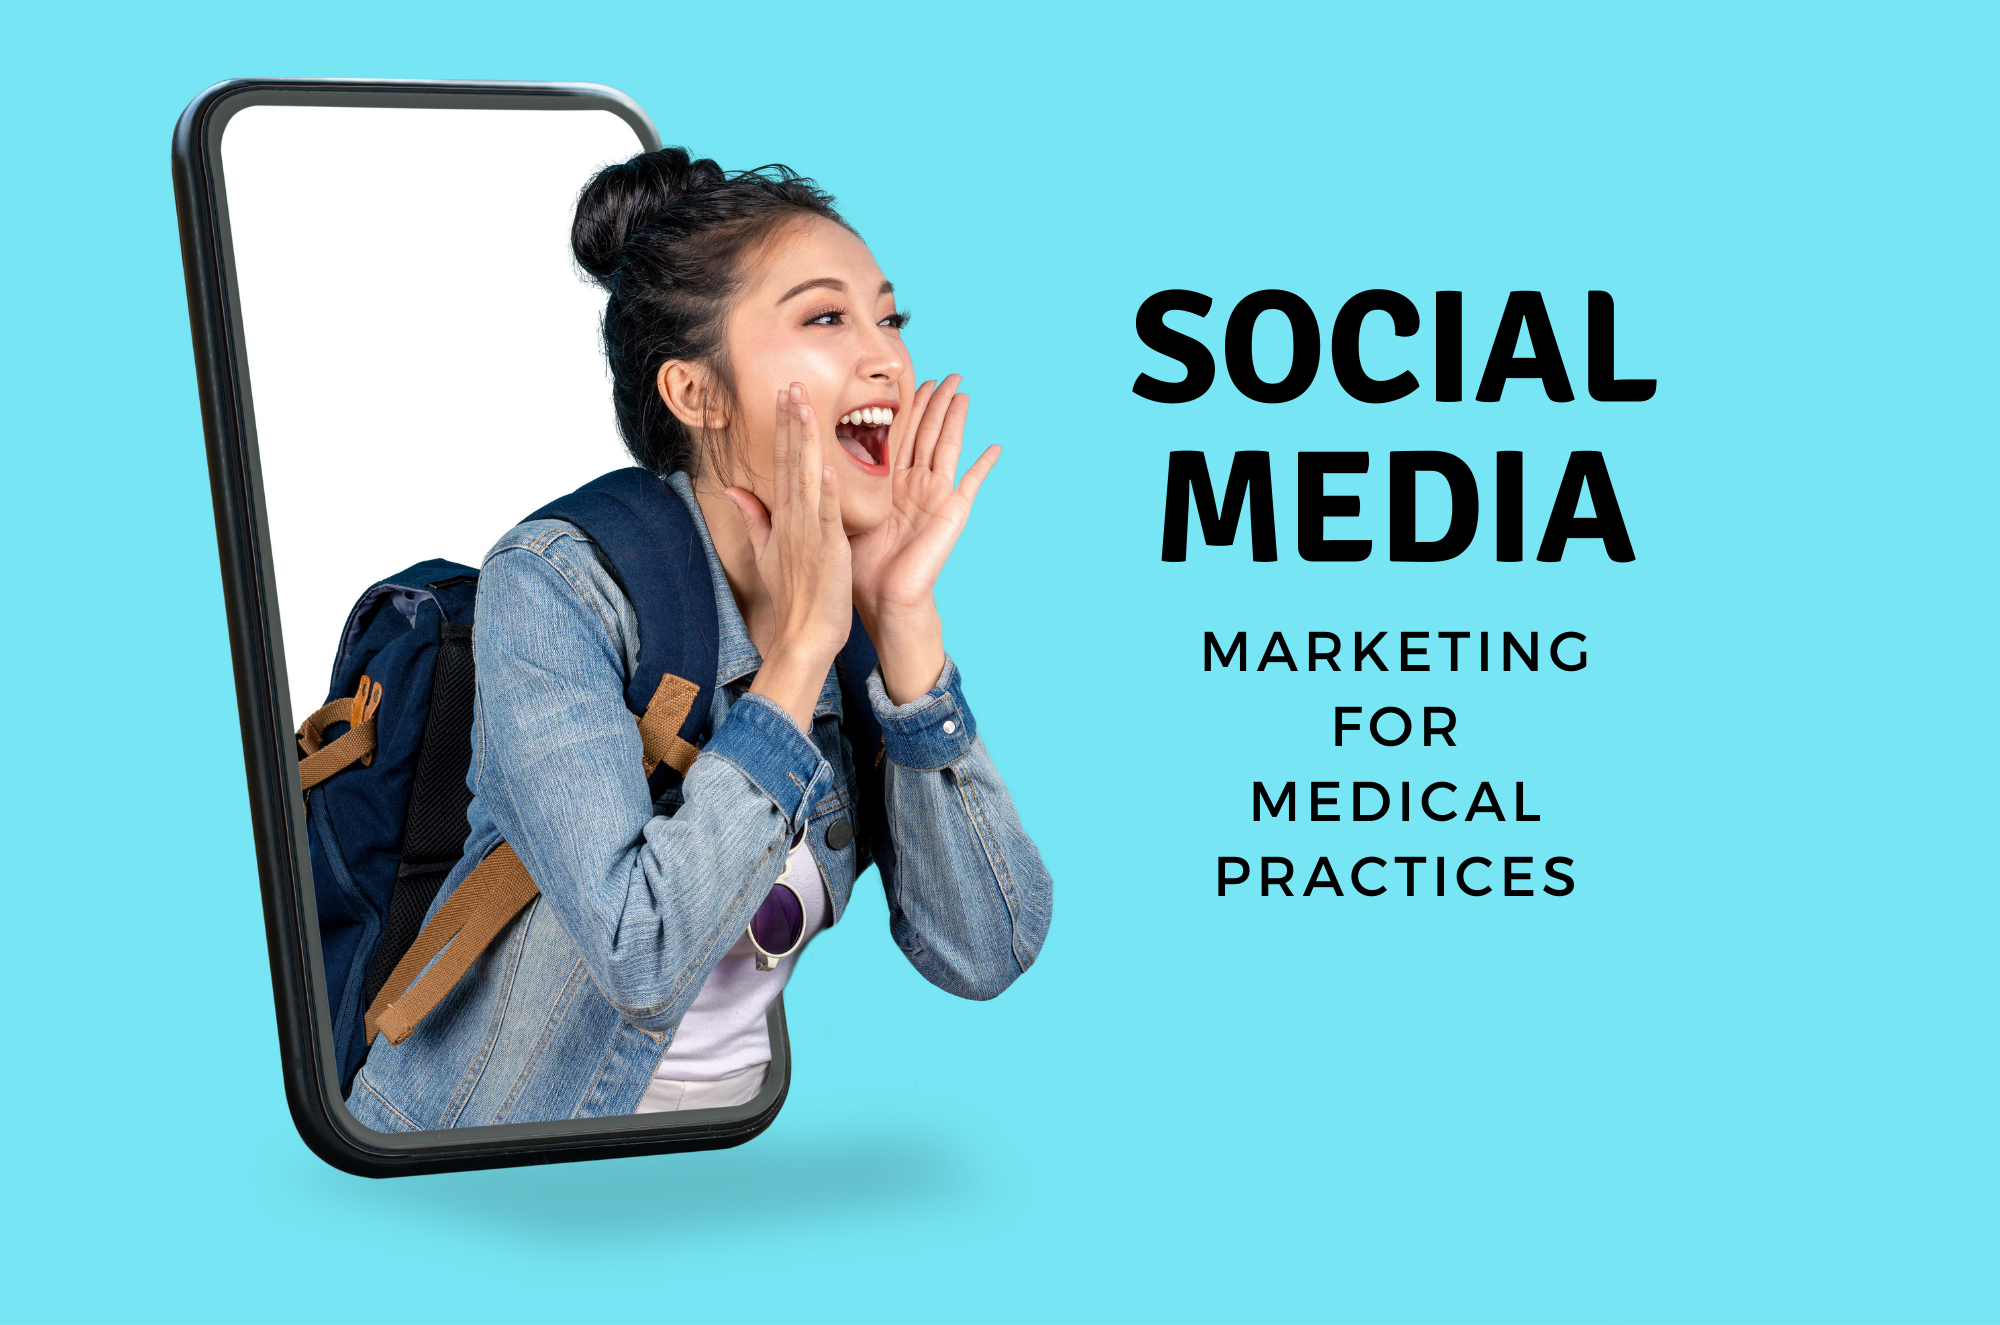 """Young woman emerging from a smartphone screen yelling, """"social media marketing"""" in text   Vanguard Communications   Denver, CO   San Jose, CA   Jacksonville, FL"""